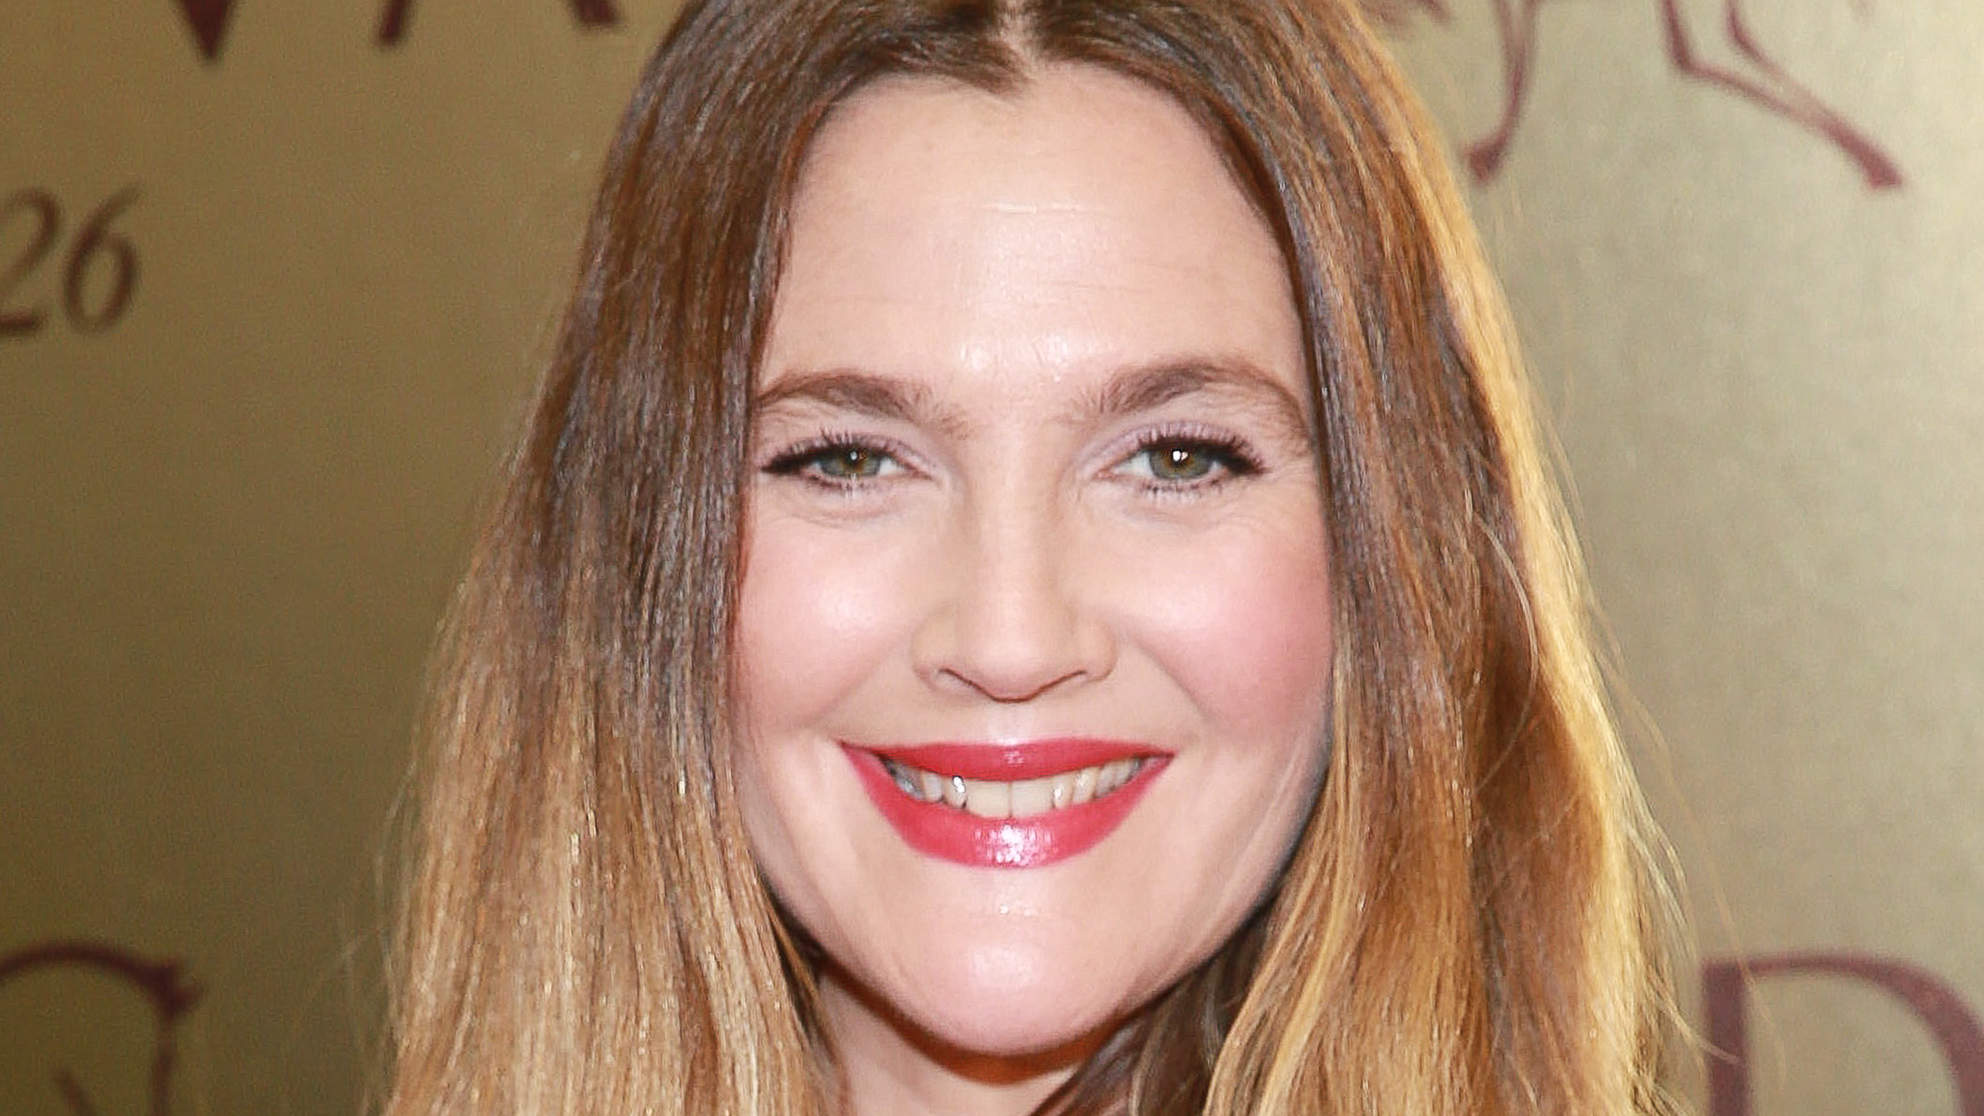 Drew Barrymore Cuts Her Hair in Response to Internet Bullying: 'Pretty Is on the Inside'